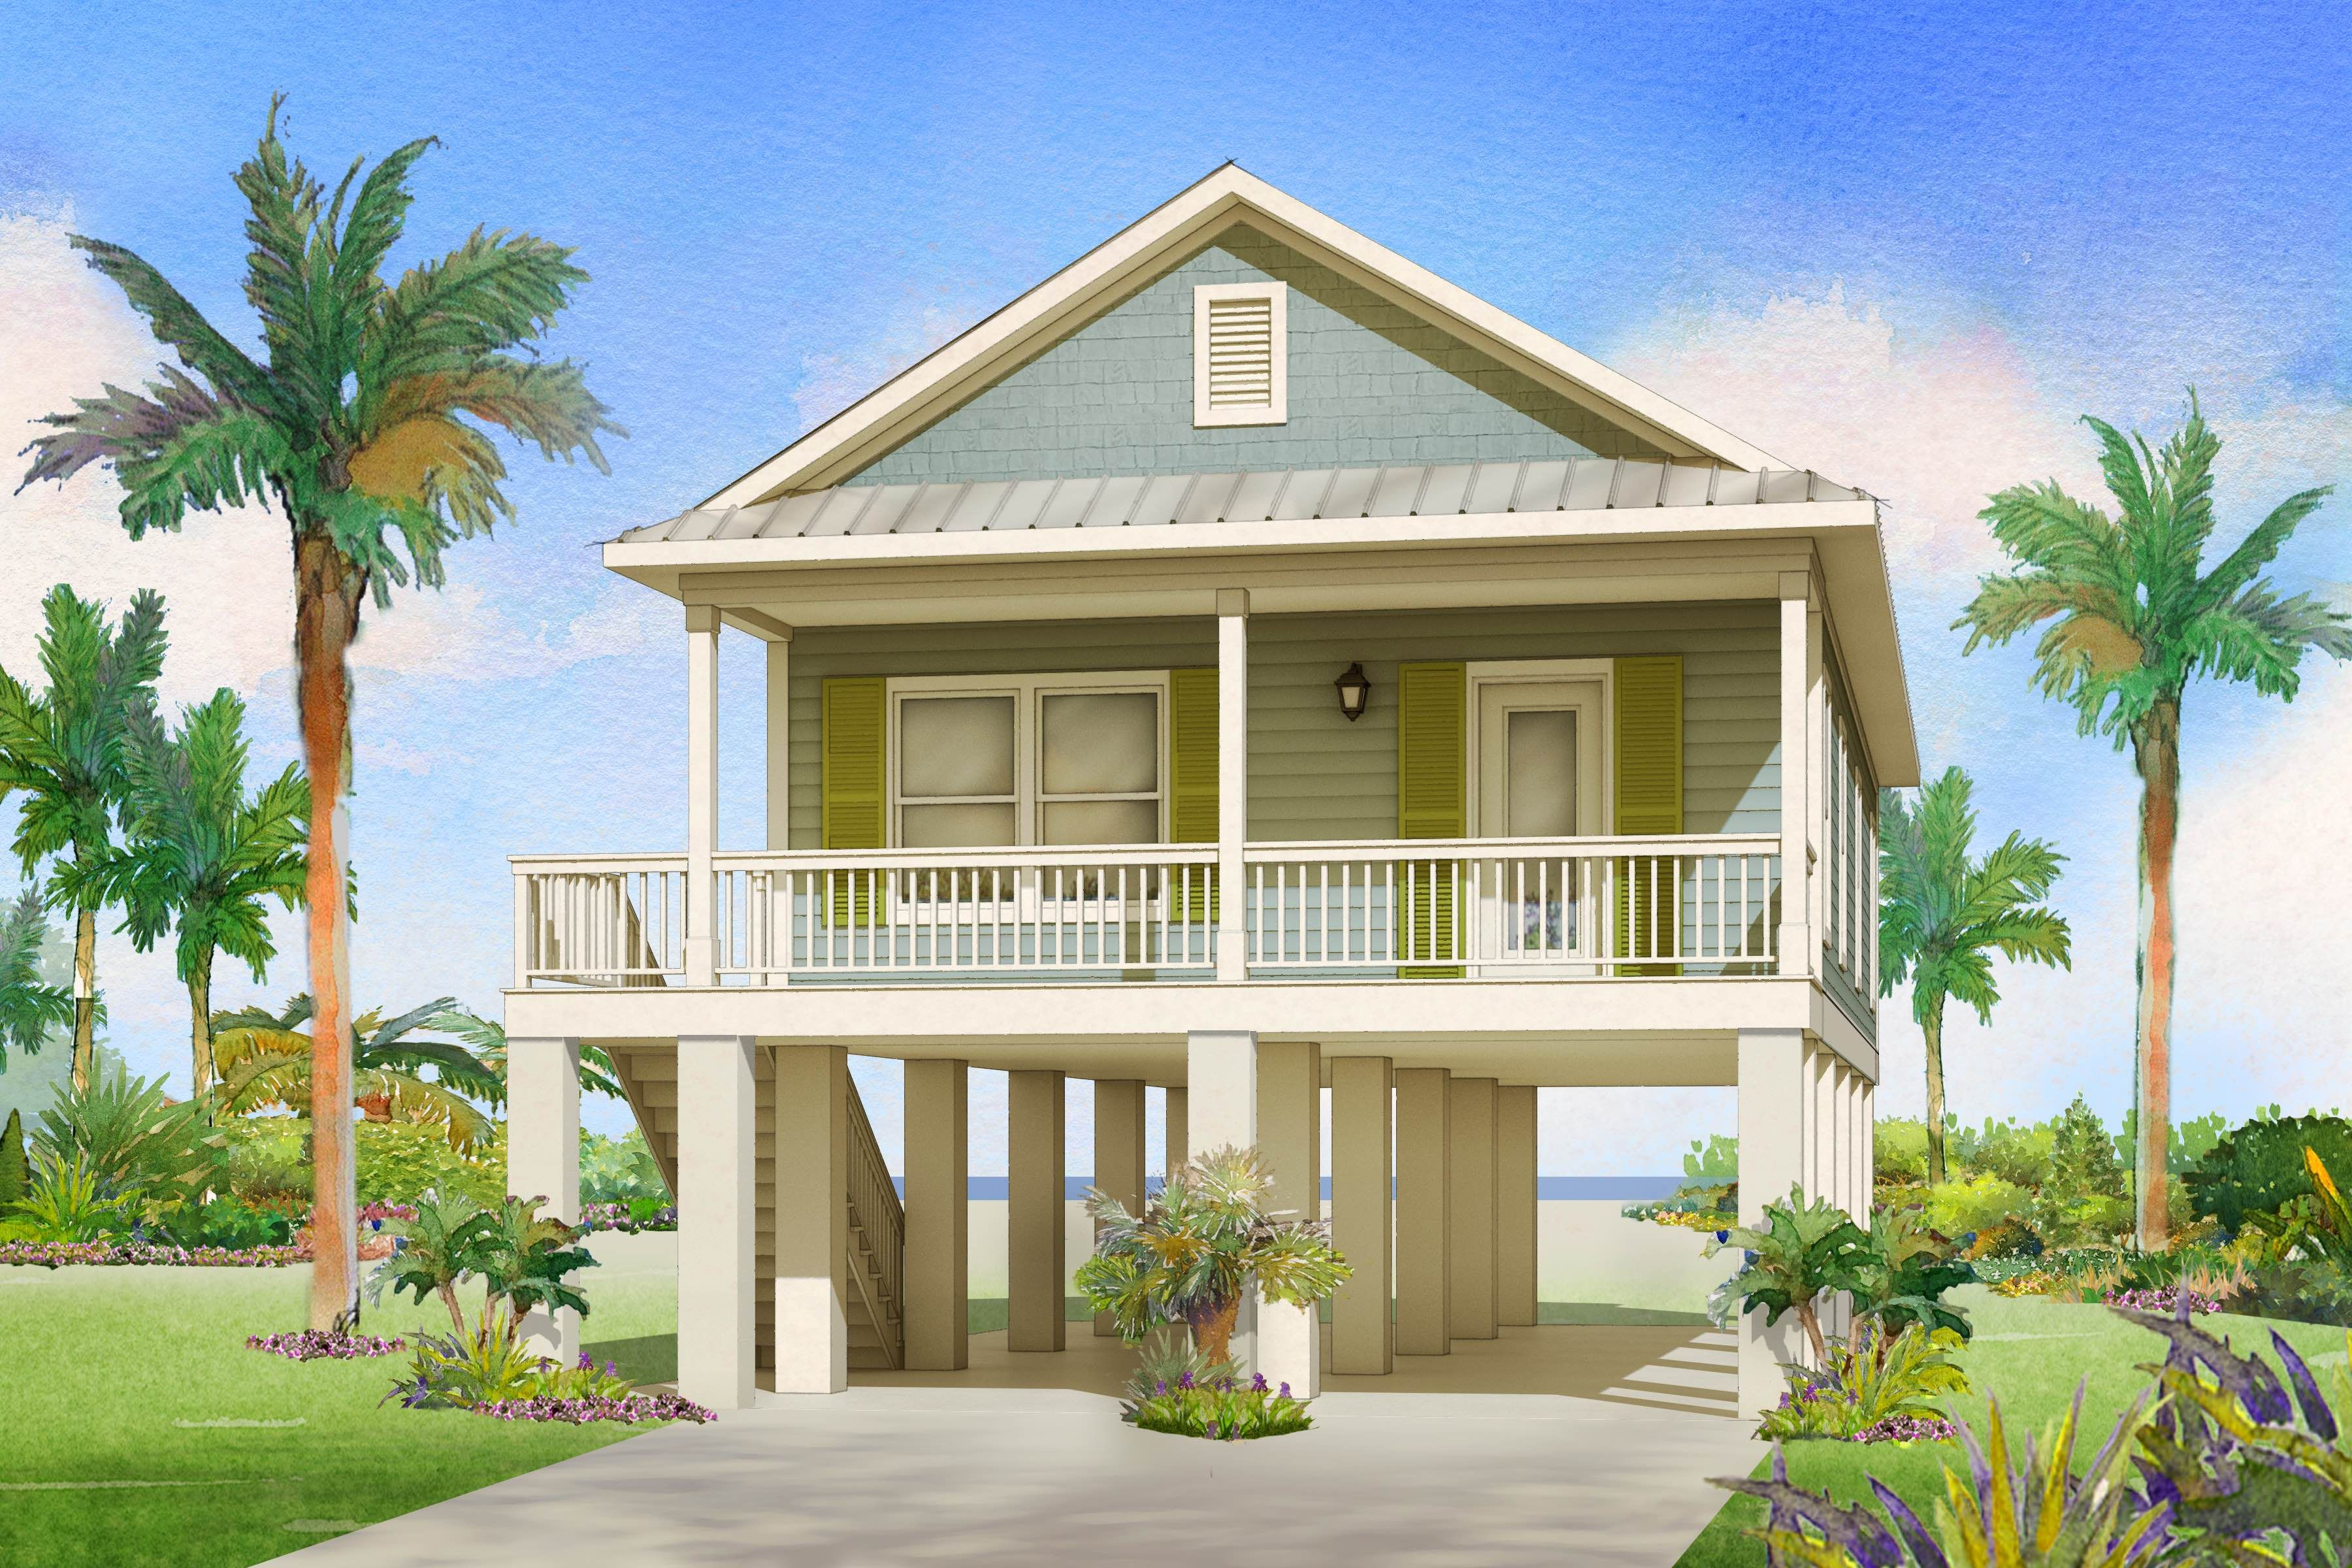 The Perfect Beach Home By Affinity Building Systems Llc The Fish Hawke Is Perfect For Your Next B Beach Cottage House Plans Stilt House Plans House On Stilts